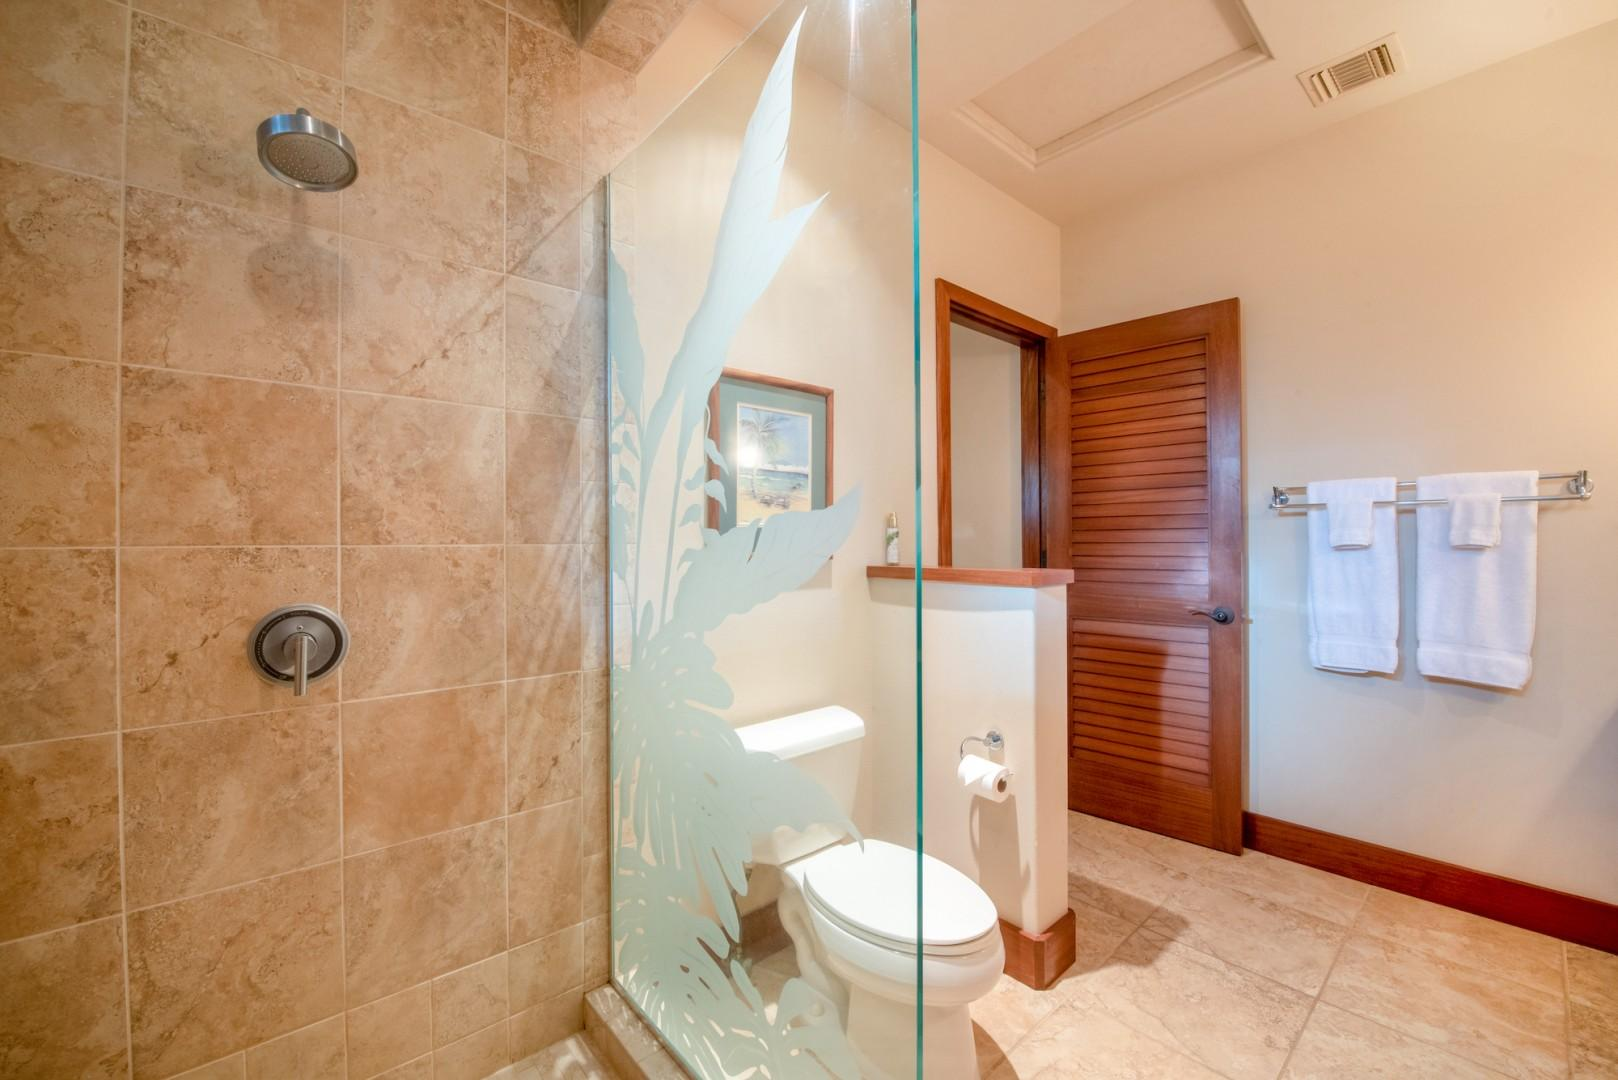 Downstairs Guest Room Bath w/ Large Glass Enclosed Shower